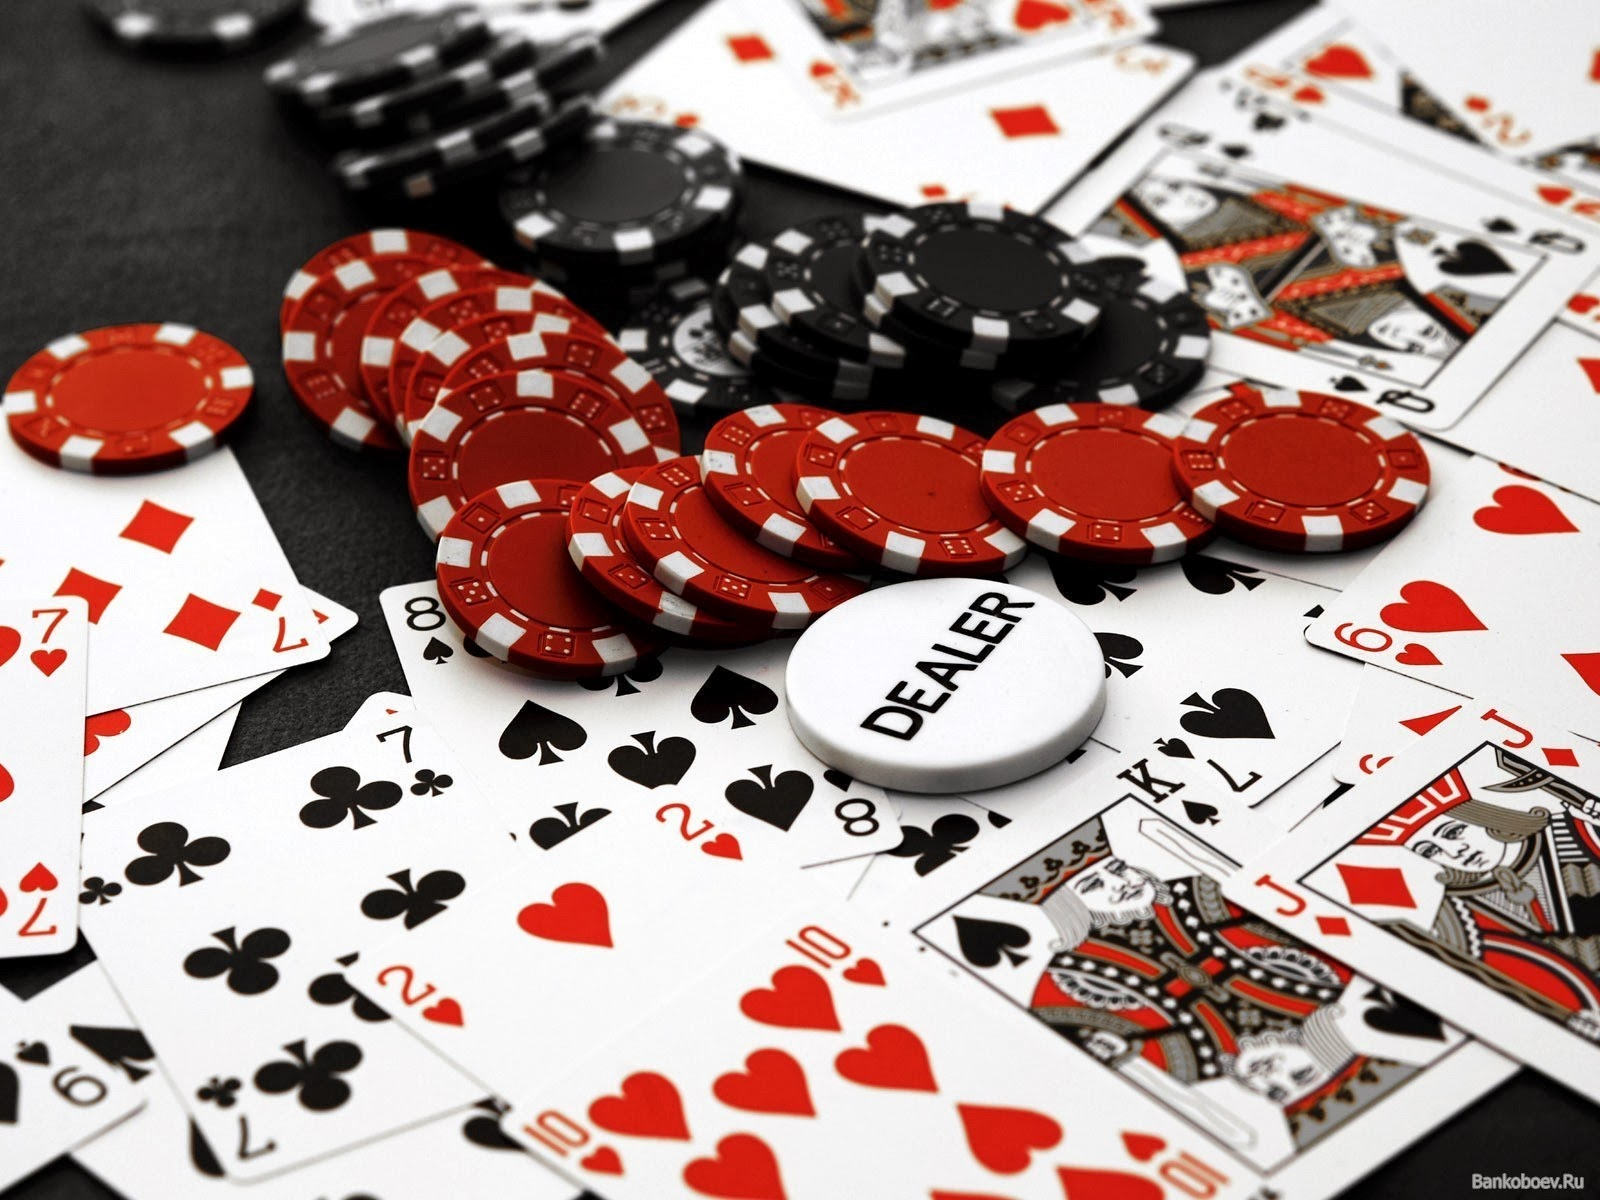 Little Understood Truths About Casino - And Why They Matter